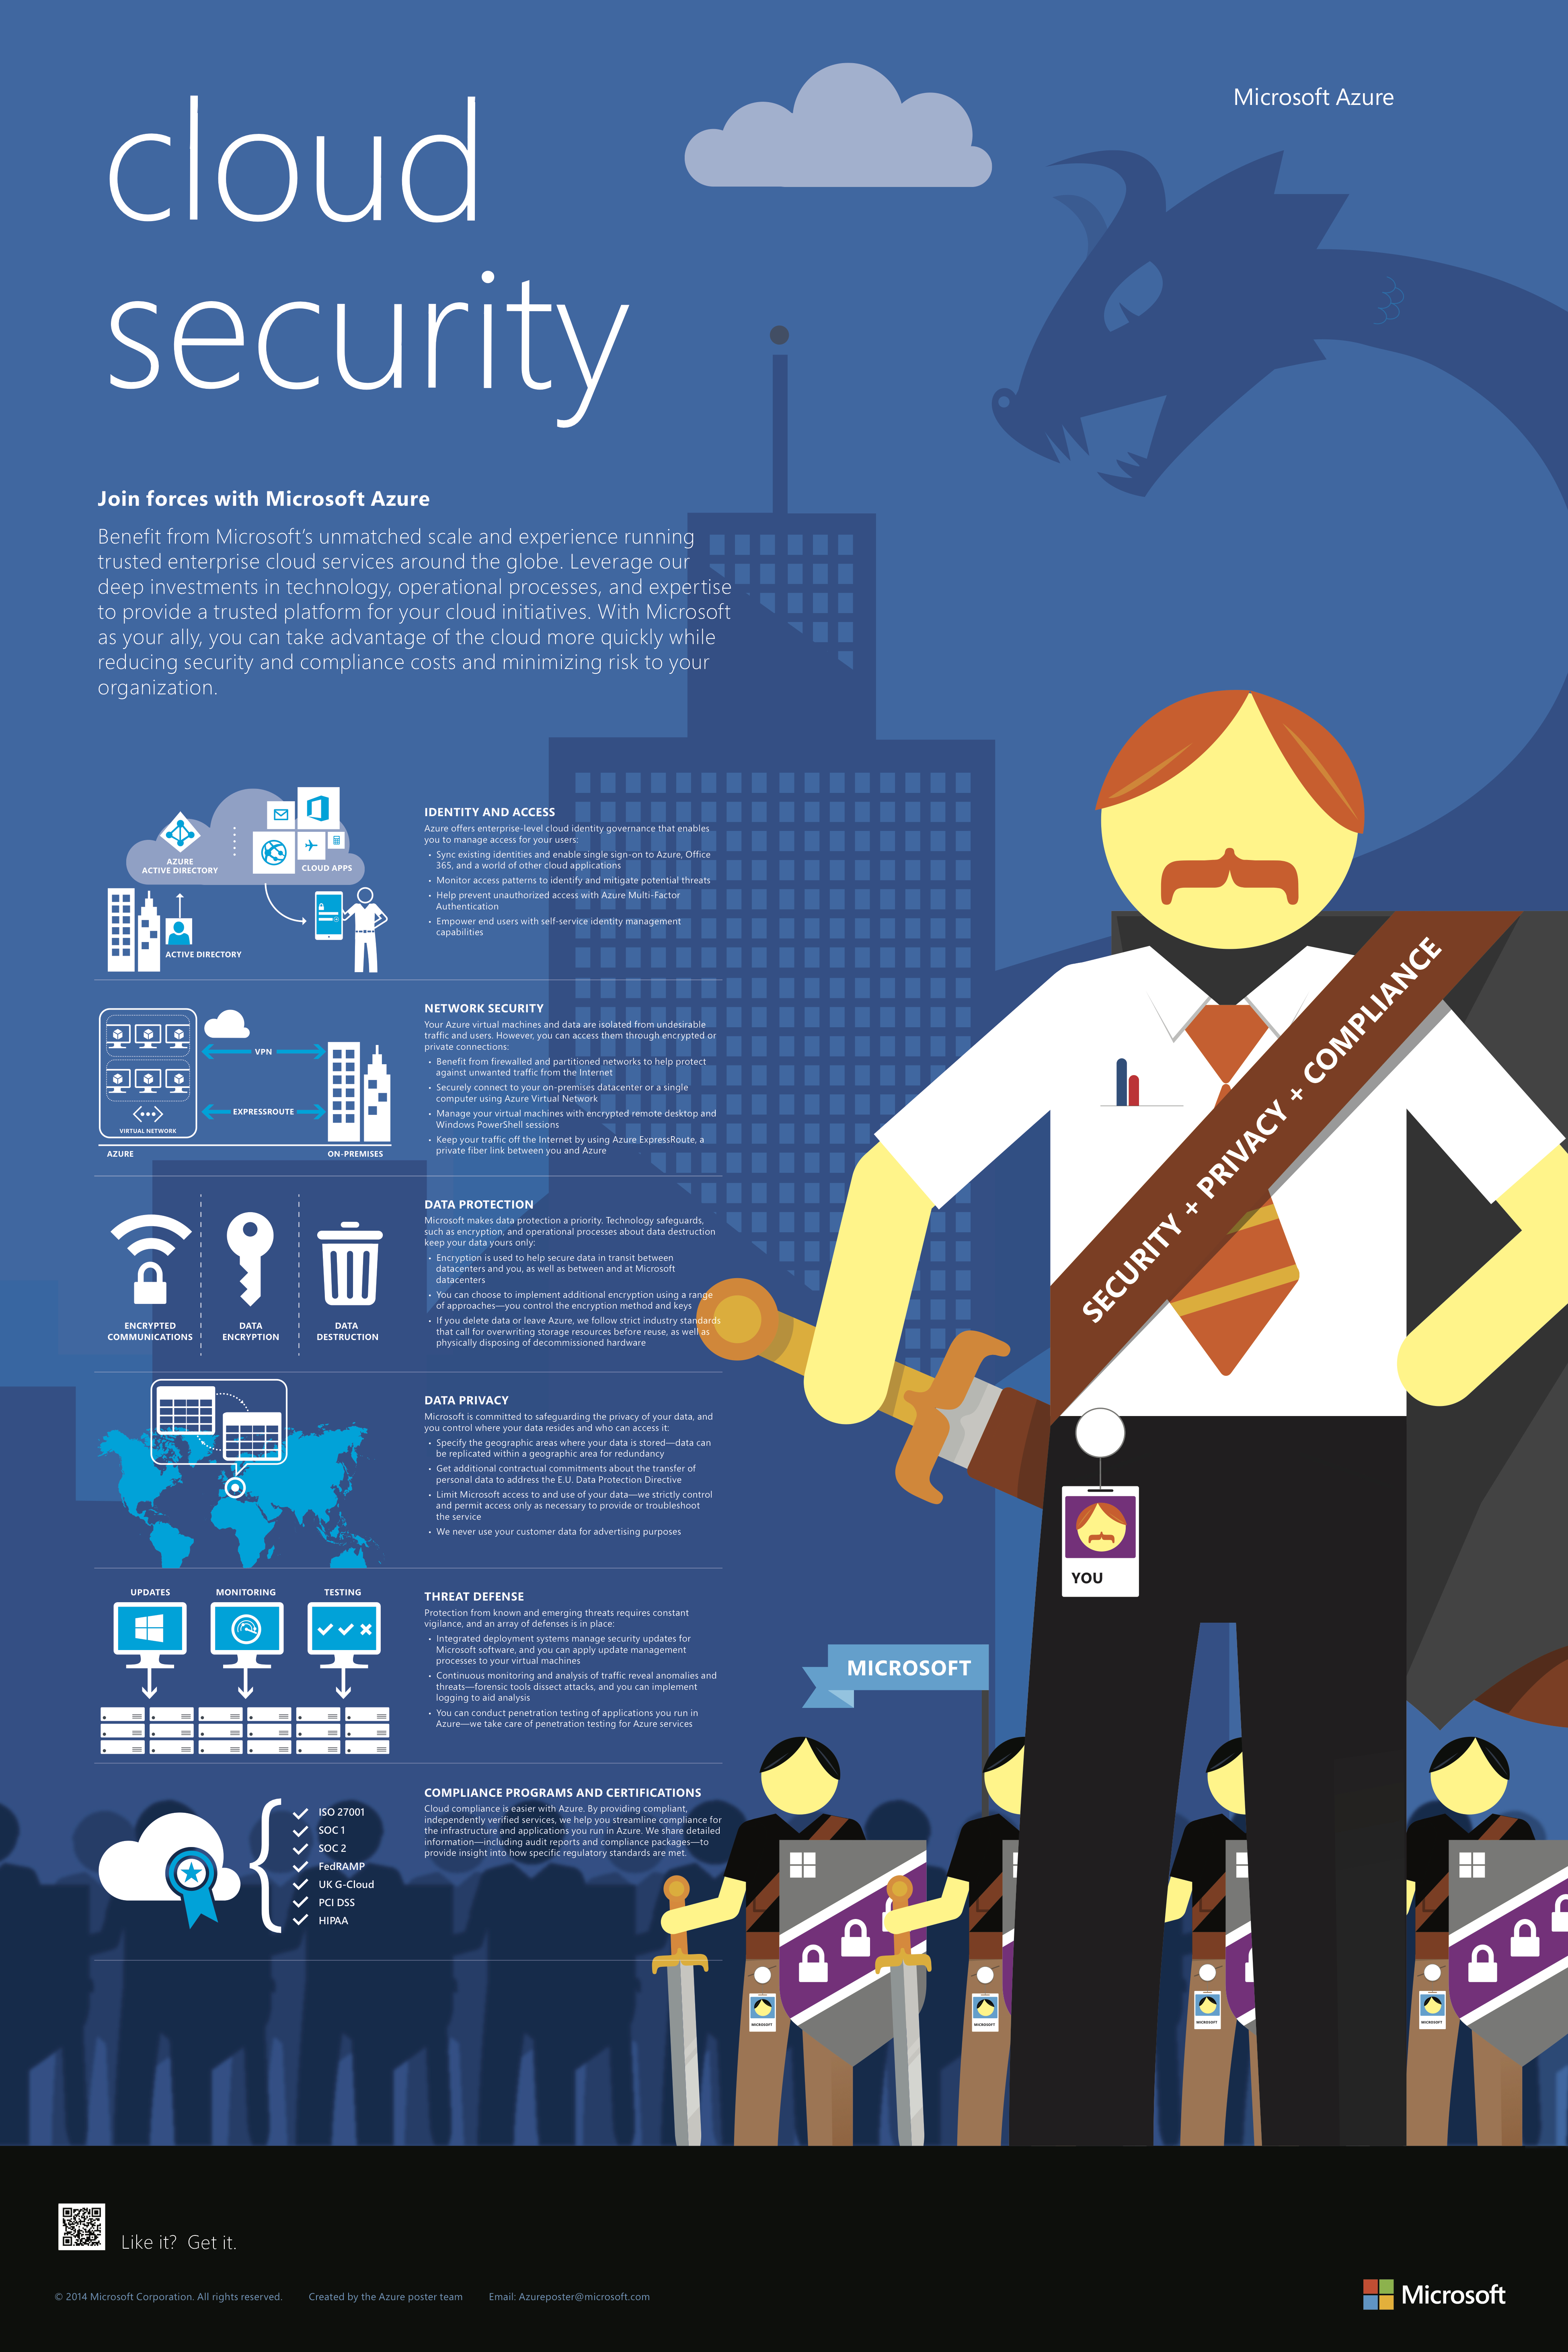 Azure Security Infographic 2014_SEC